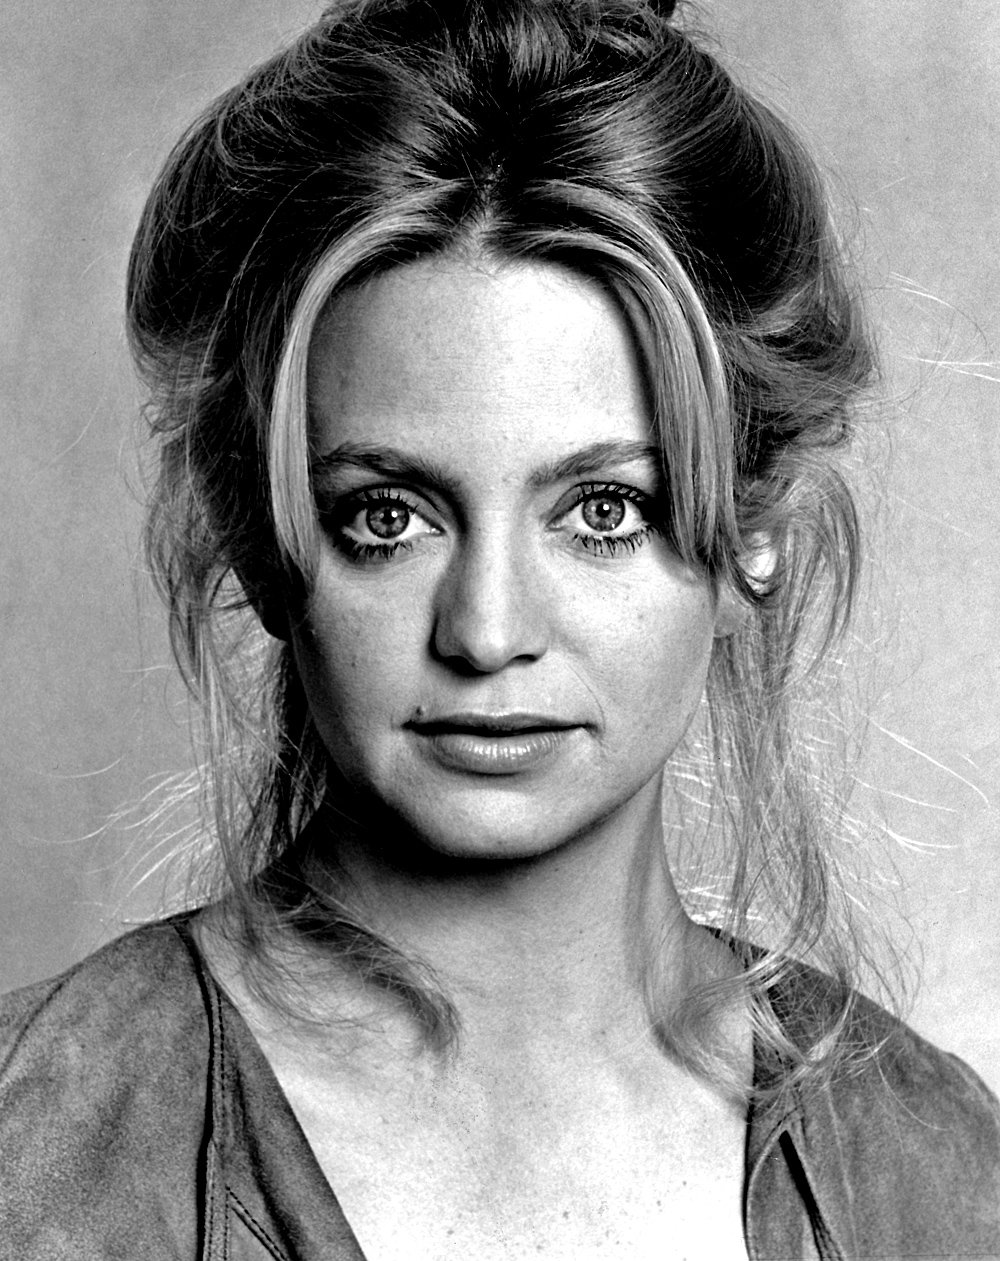 Happy Birthday to Goldie Hawn! She turns 73 today.